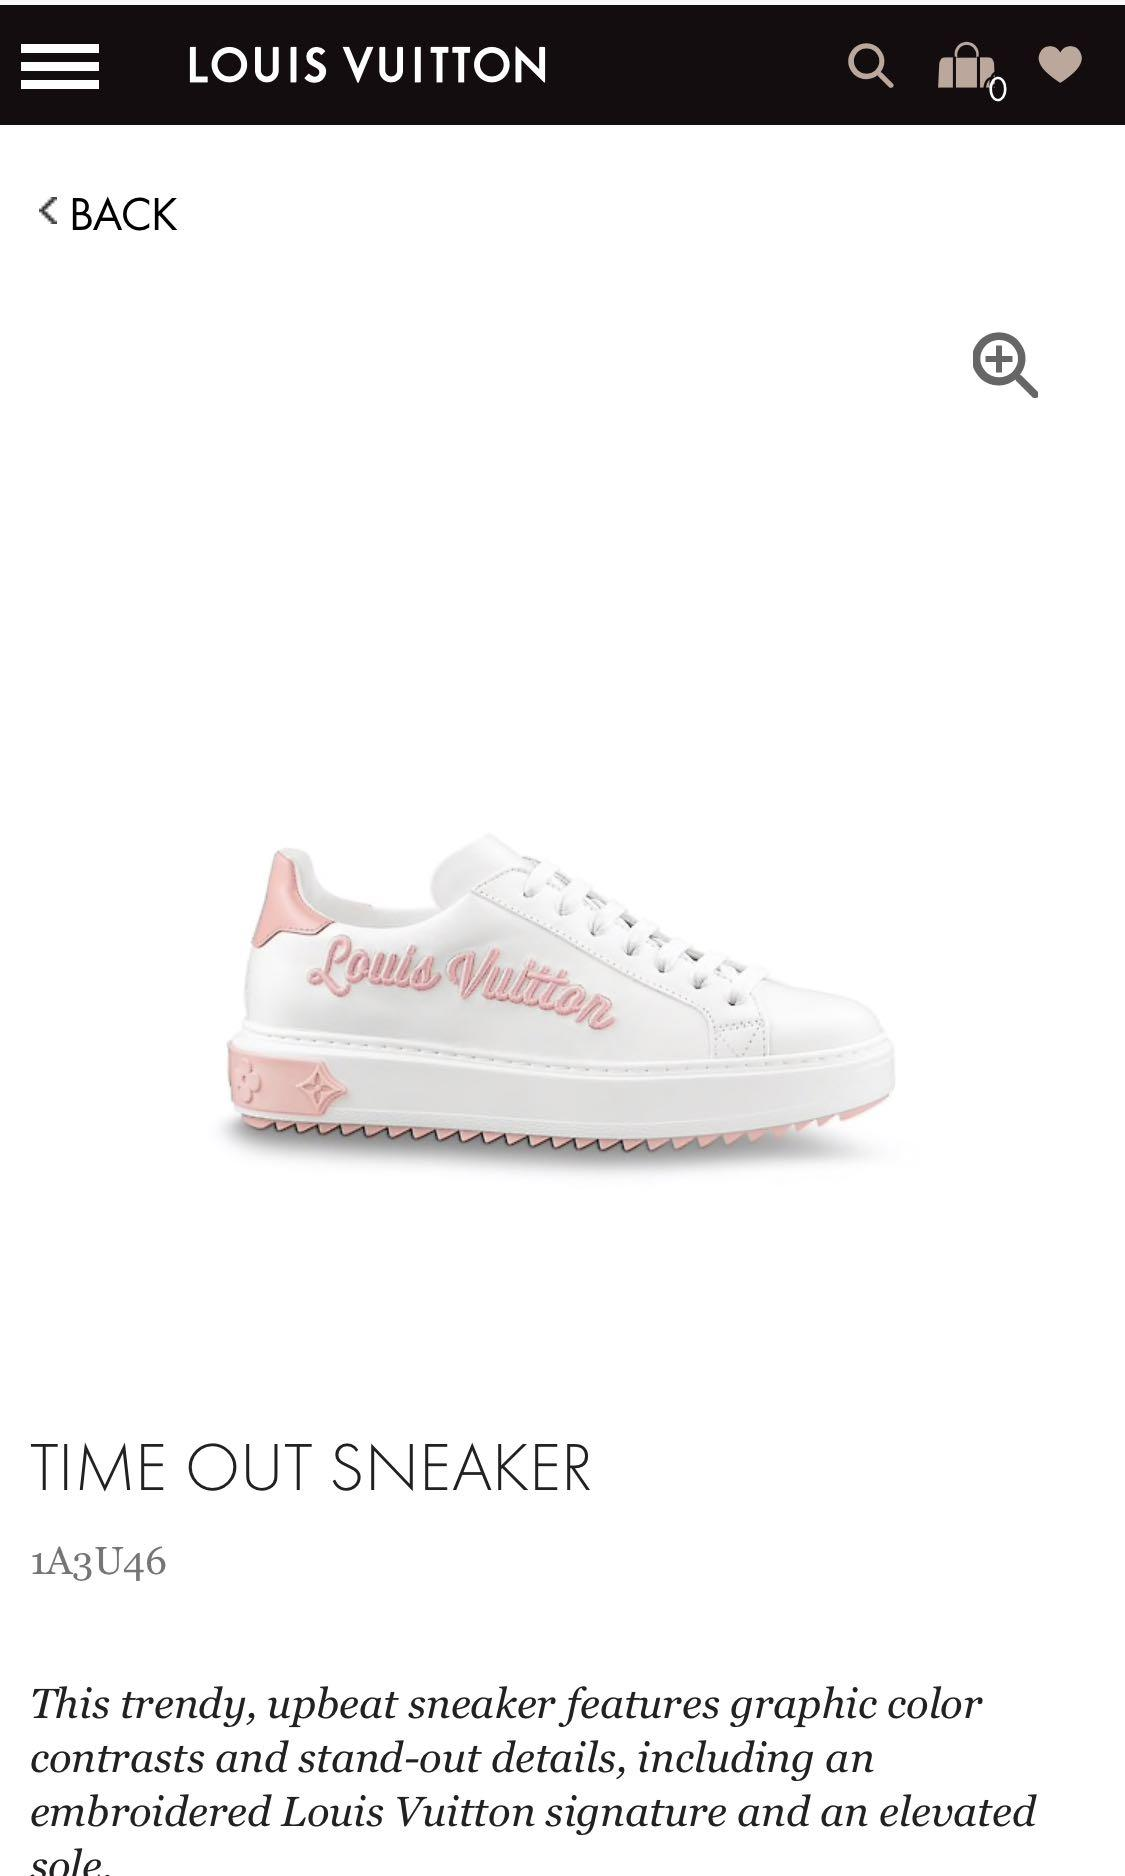 713544d2c0f Louis Vuitton Time Out Sneakers Pink, Luxury, Shoes on Carousell